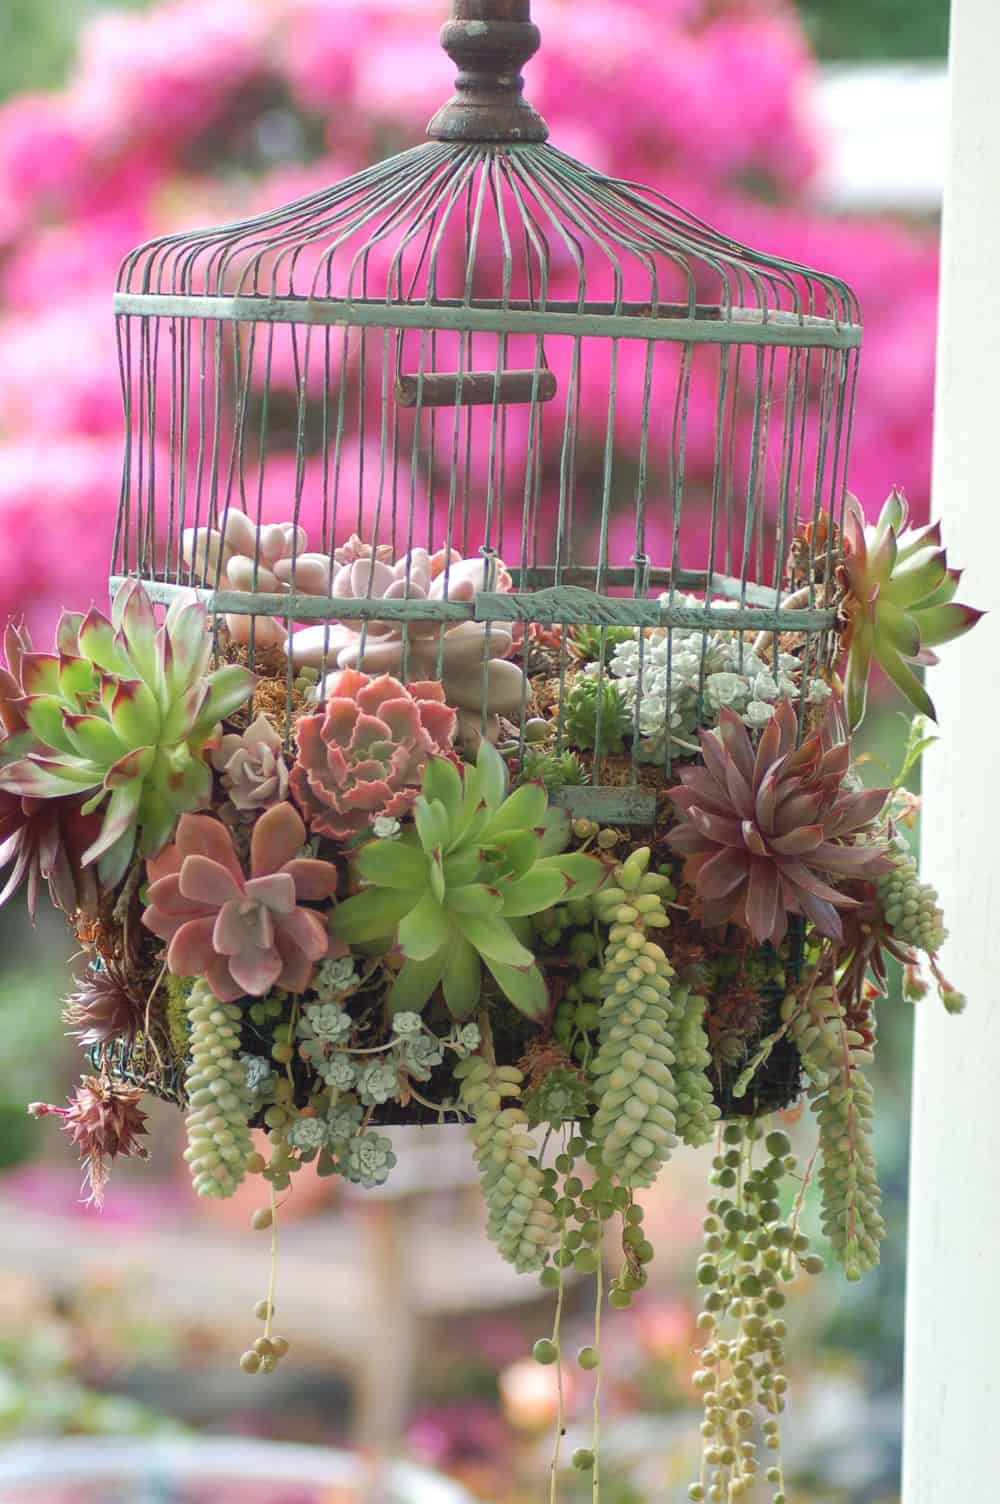 A BIRD CAGE CAN FULFILL THE ROLE OF SUCCULENT ARRNAGEMENT